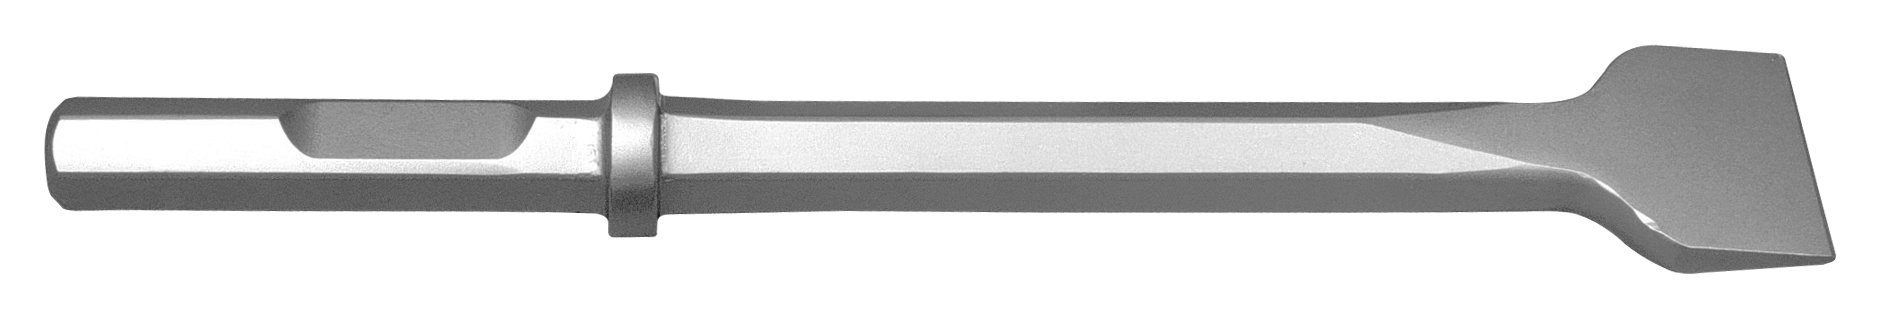 Champion Chisel, 1-1/8 by 6-Inch Hex Shank with Notch, 14-Inch Long by 3-Inch Wide Chisel - Designed for 60lb & 90lb Pneumatic Hammers